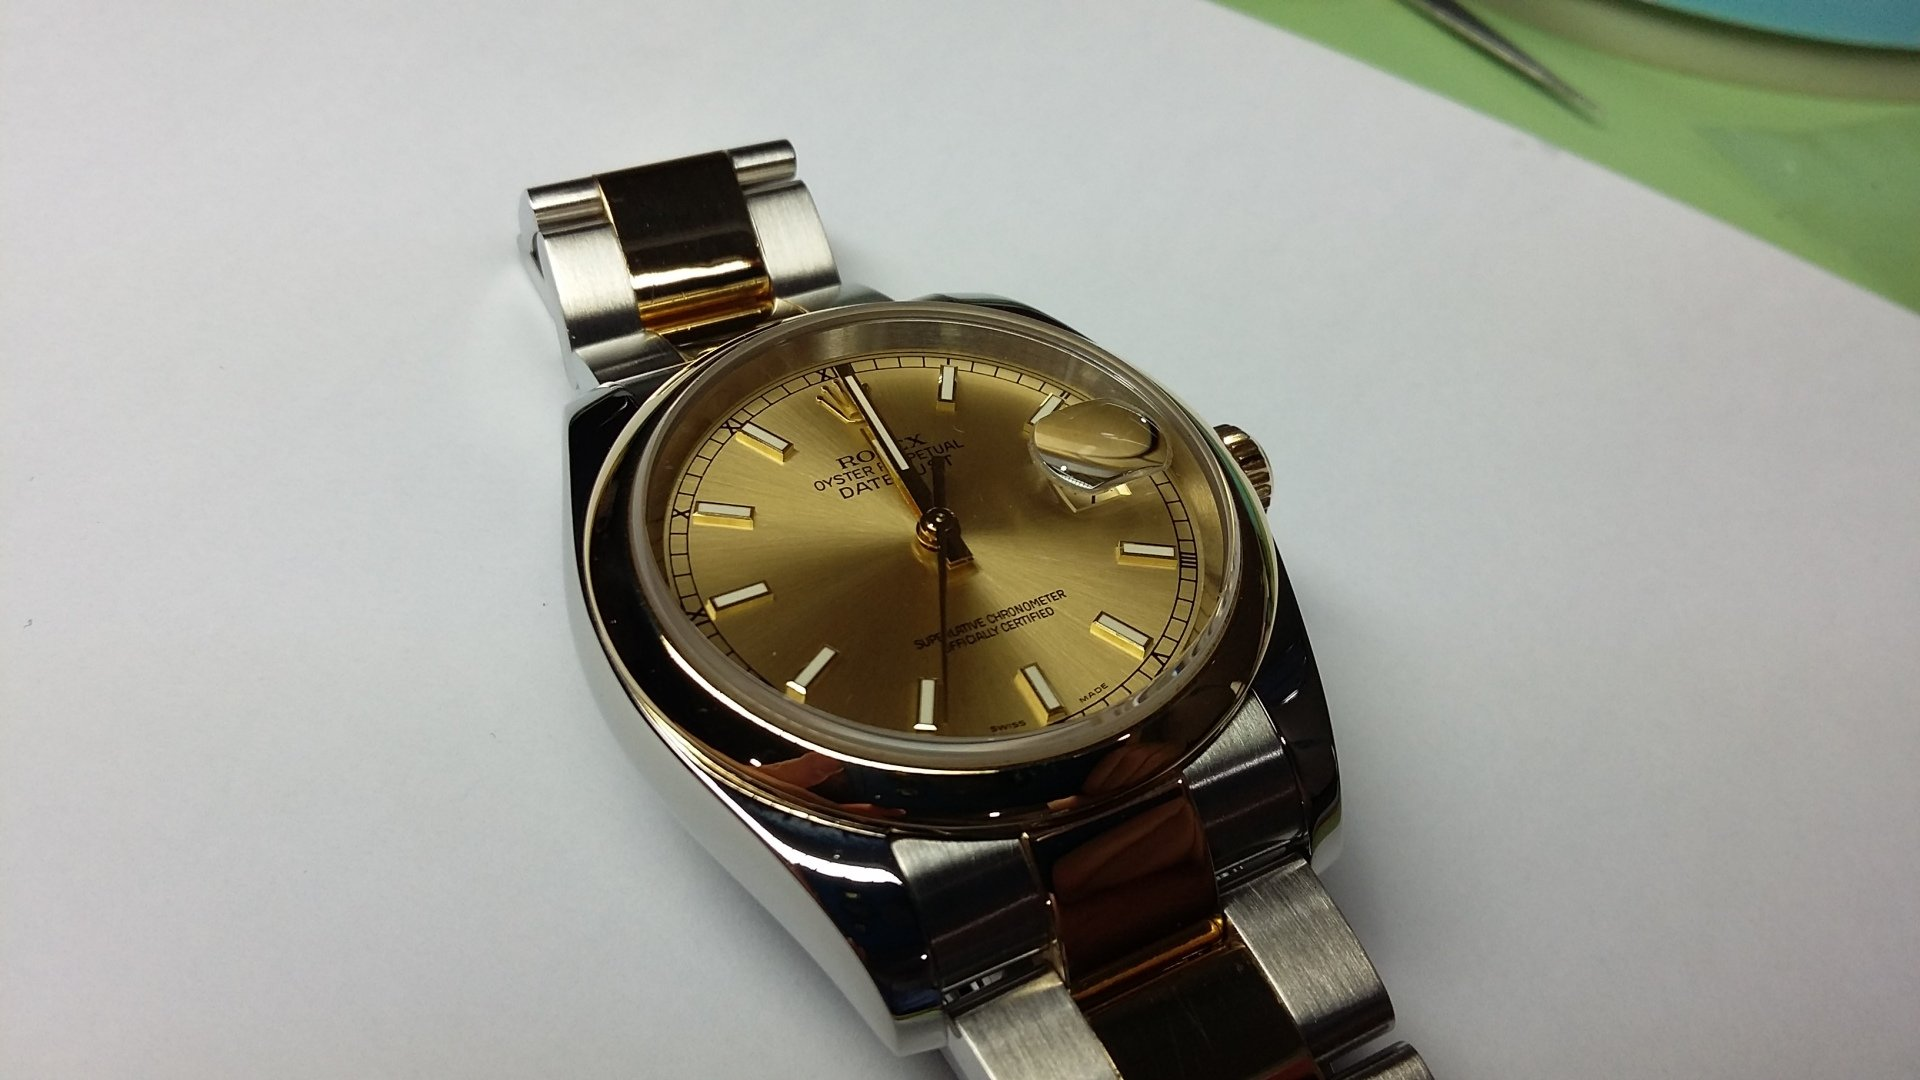 FULLY SERVICED WATCH